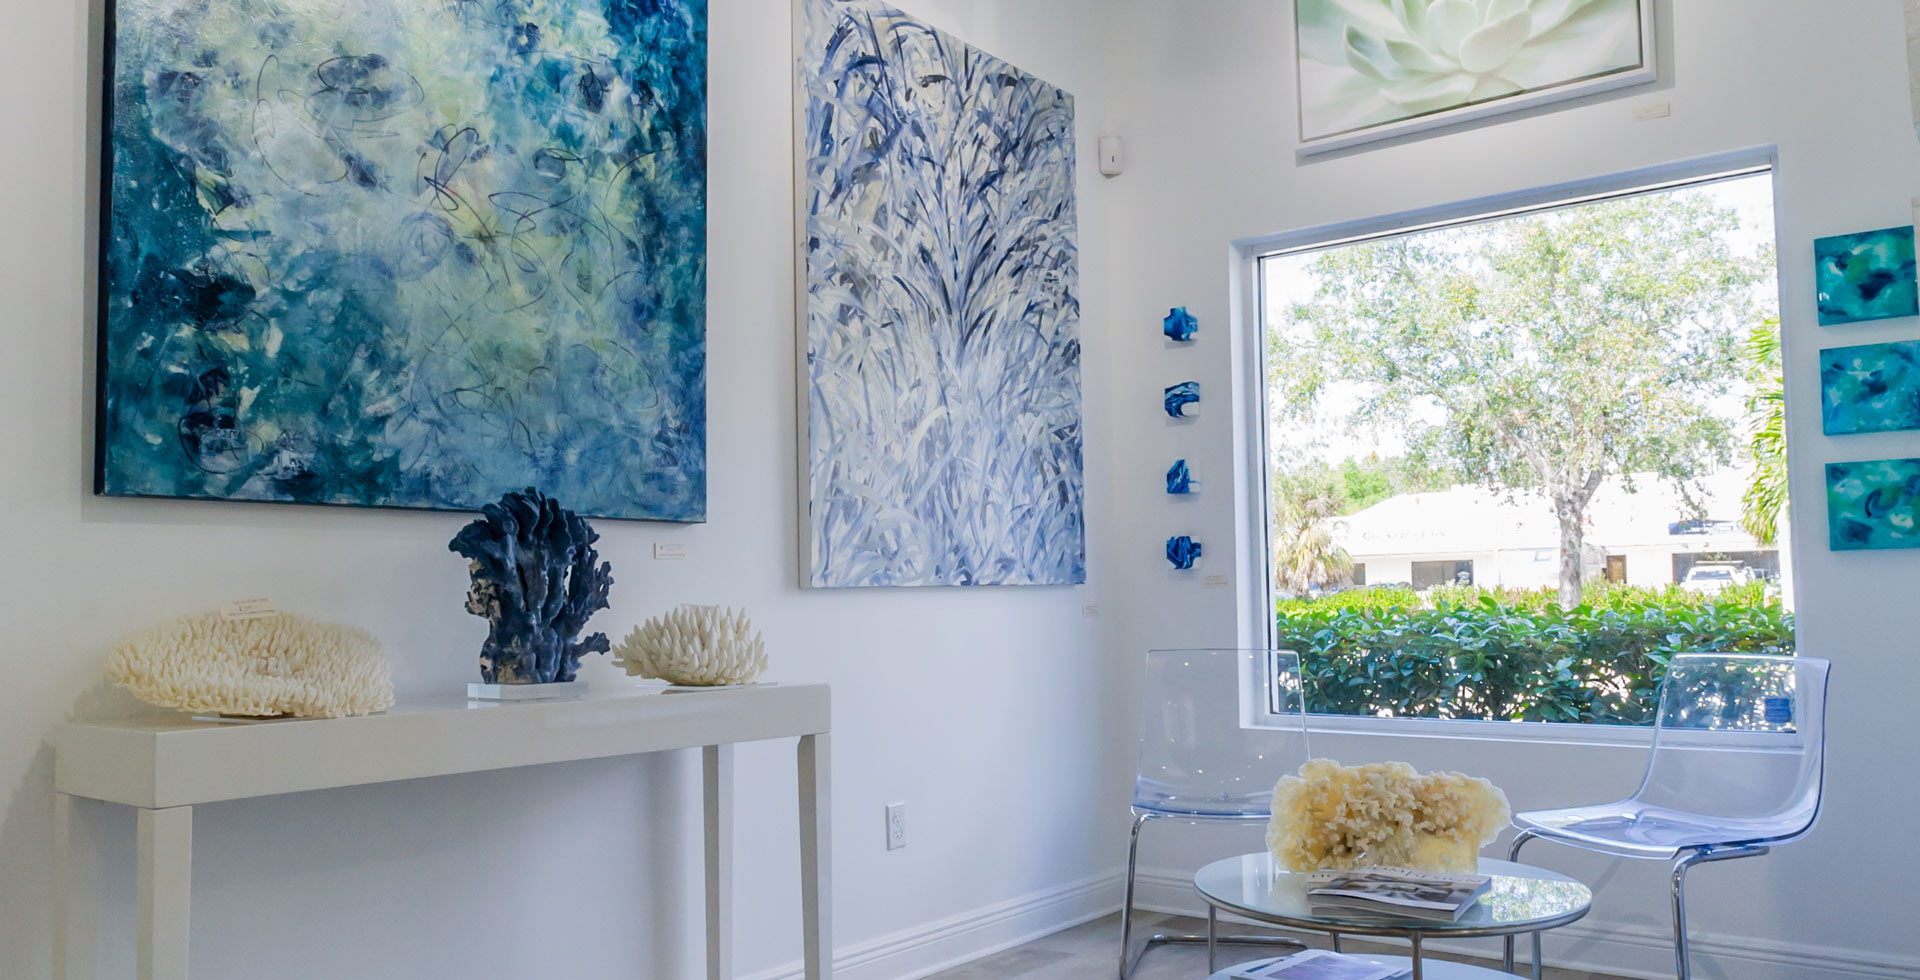 Custom Framing Art Gallery in Naples, Florida | Aldecor Custom Framing & Gallery - Naples, Florida